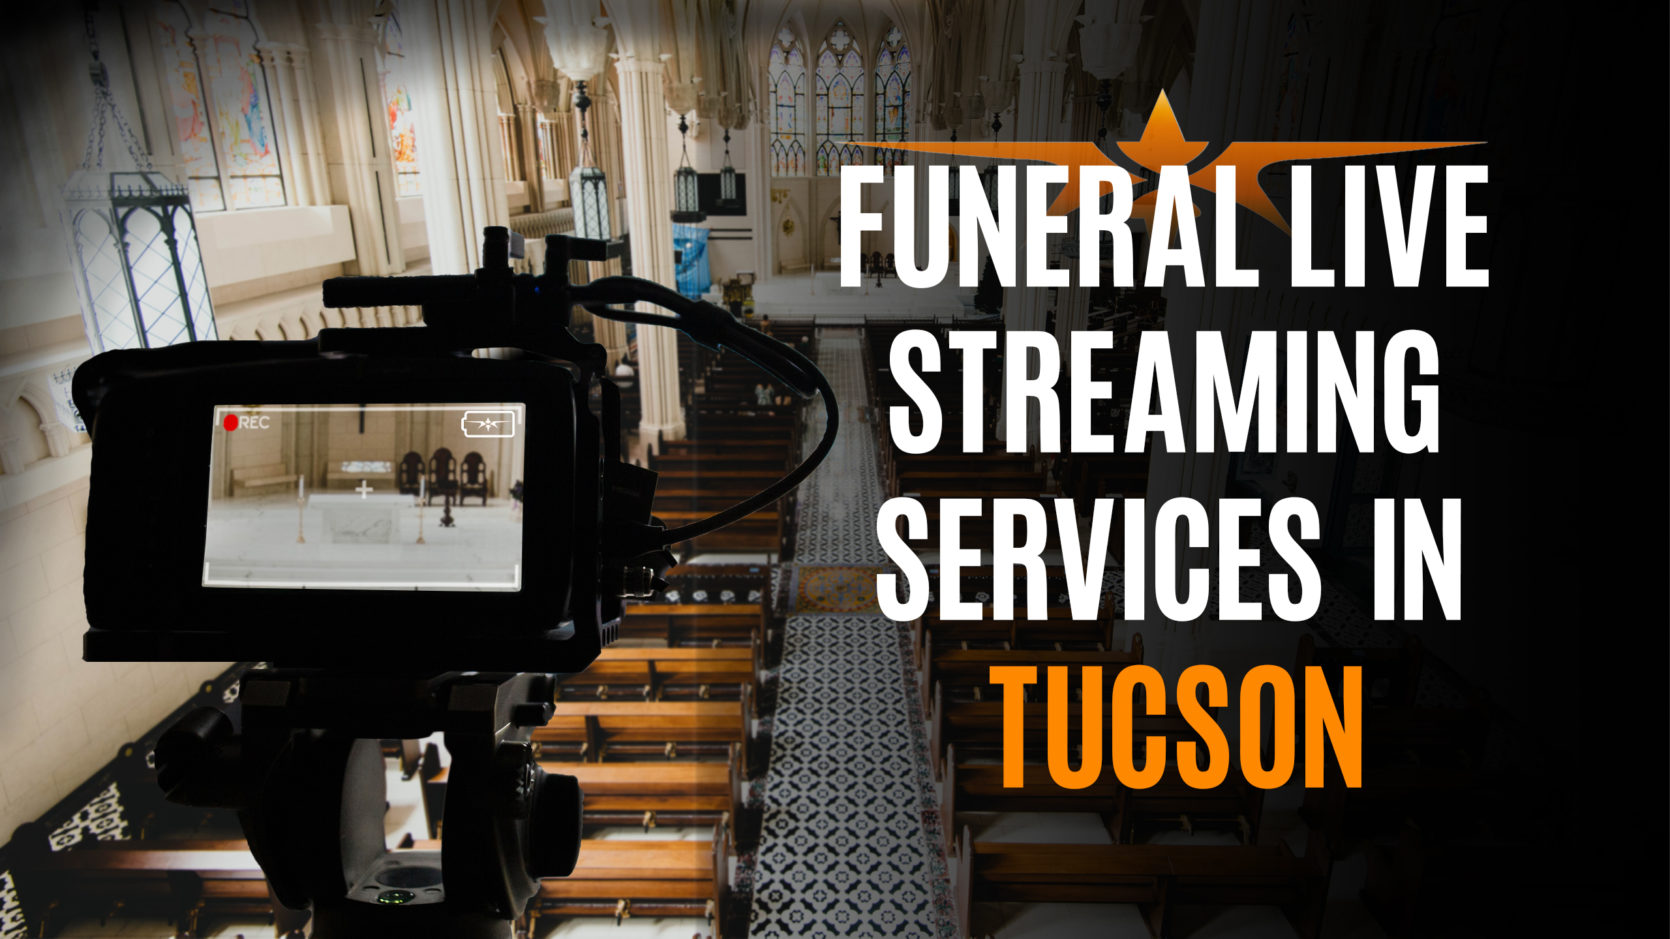 Funeral Live Streaming Services in Tucson